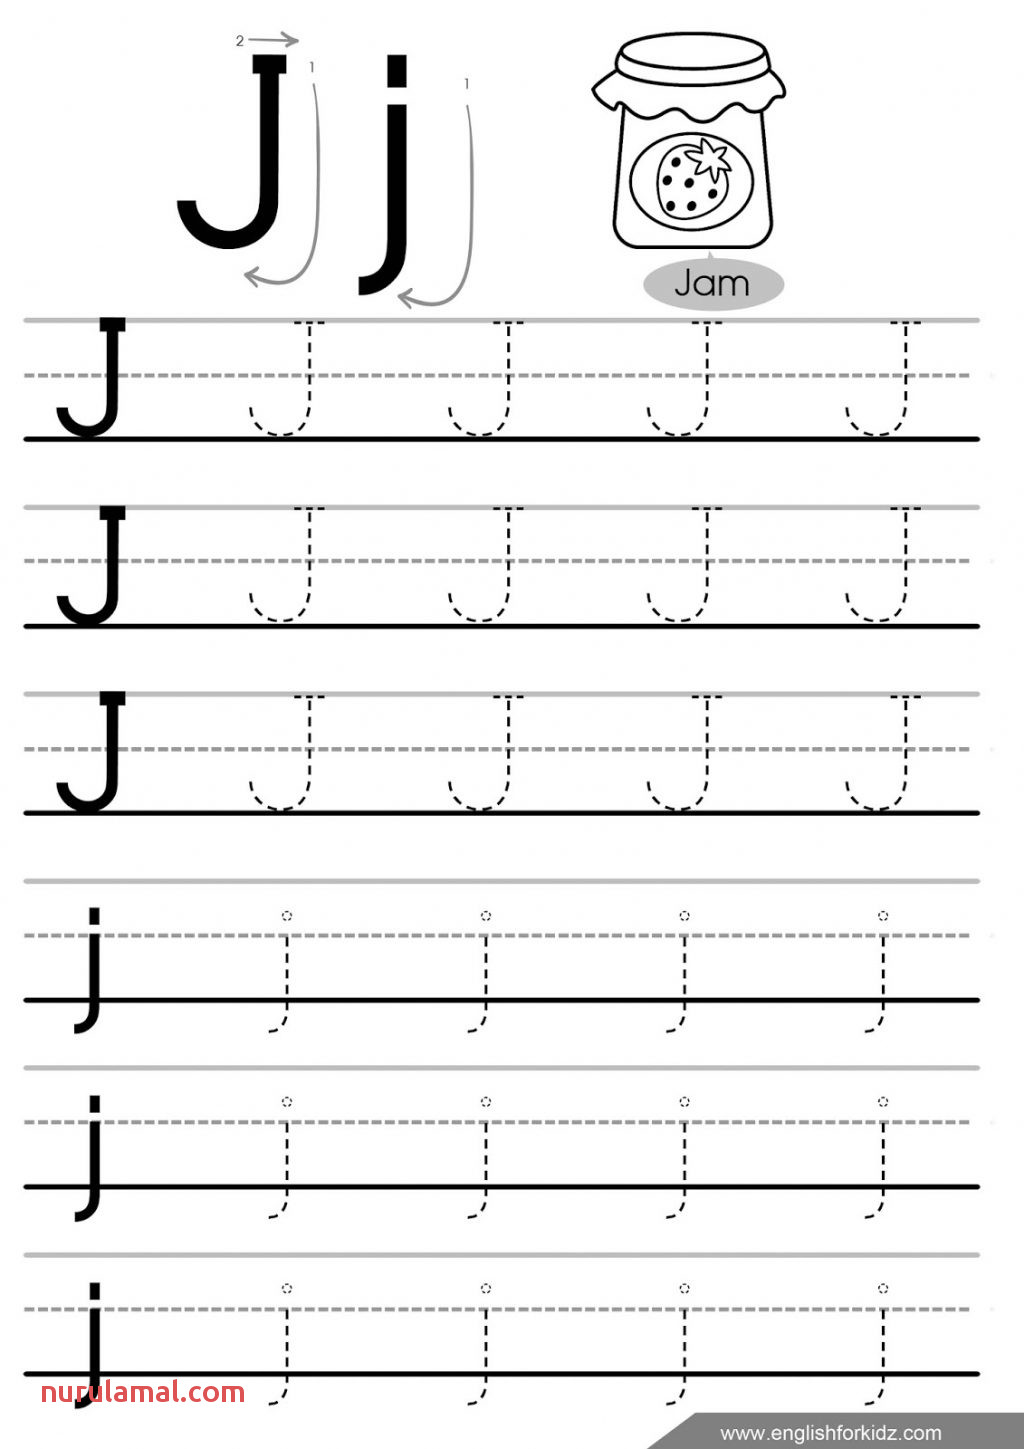 letter j tracing worksheet ideas preschool i worksheets free printable with drawings 1024x1449